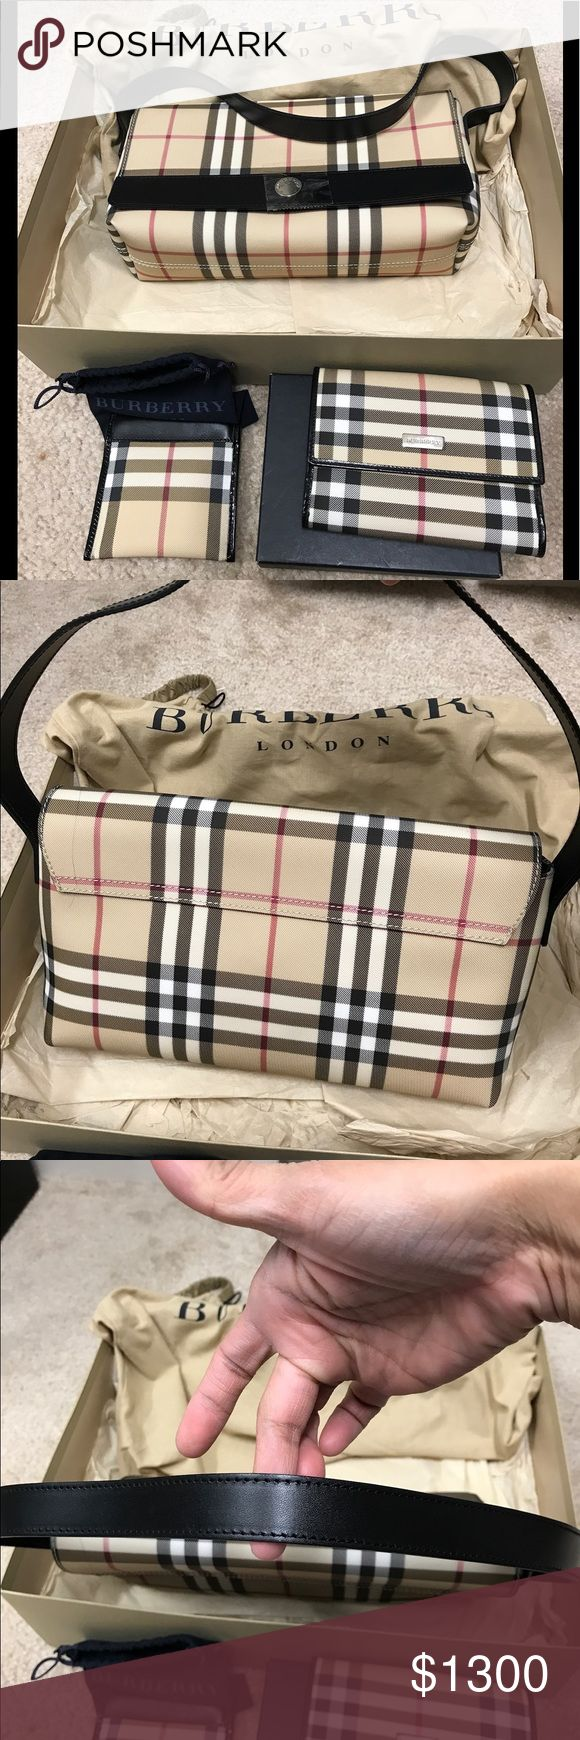 Auth Burberry clutch and wallet SET Unused Classic Burberry handbag/clutch with gently used trifold authentic wallet. You will love this set. Clean inside and out. No rips no tears. Just plain beauty. Burberry coin purse has already been purchased so not included in the set. Burberry Bags Clutches & Wristlets